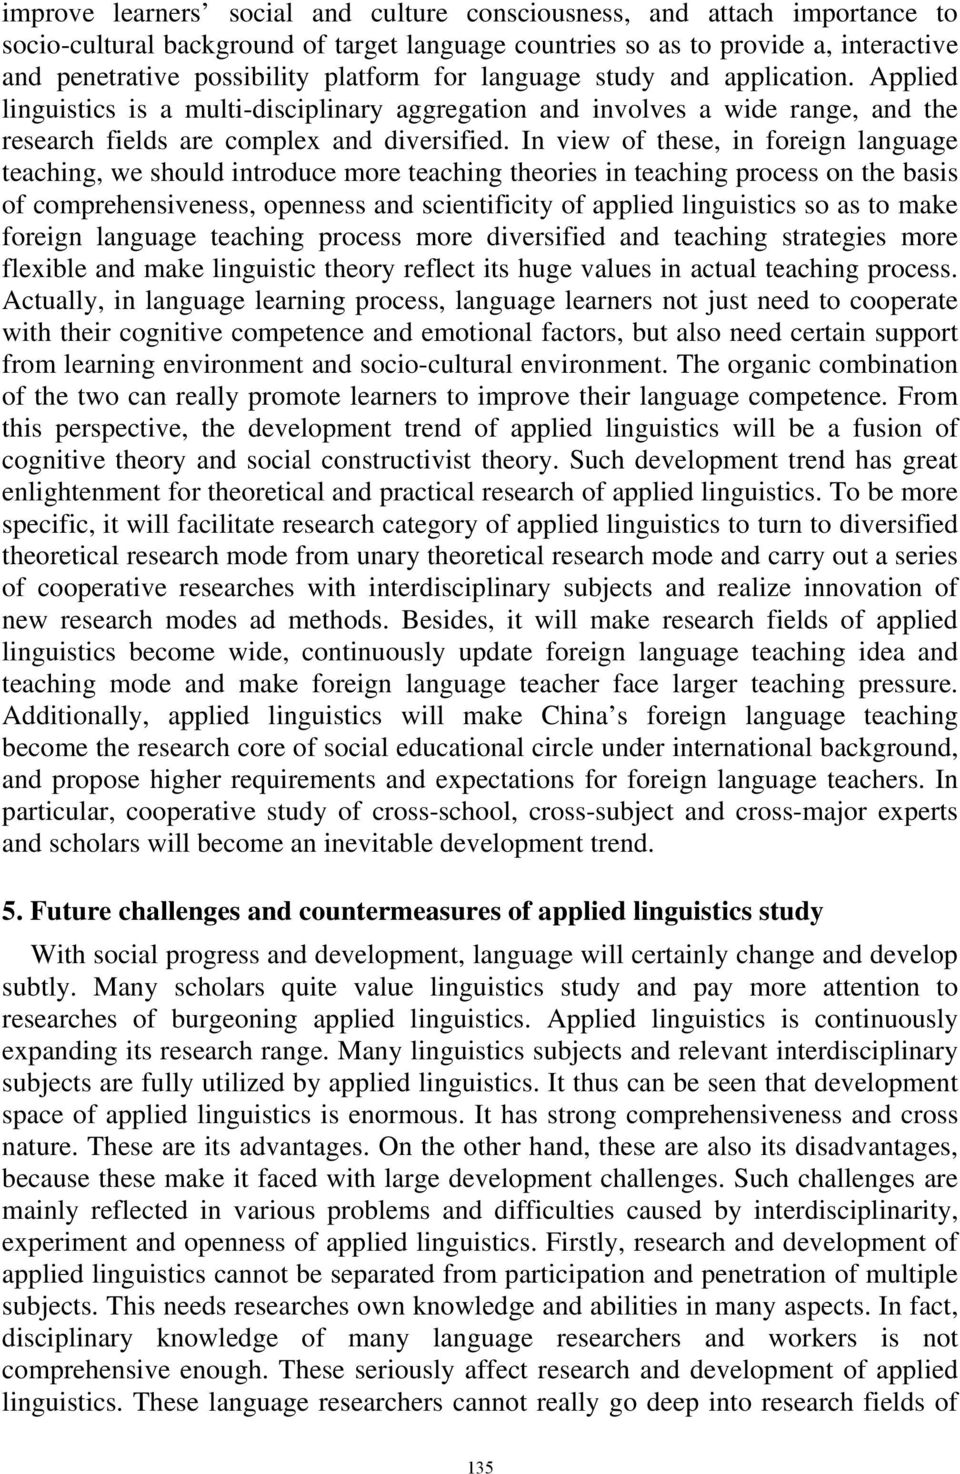 In view of these, in foreign language teaching, we should introduce more teaching theories in teaching process on the basis of comprehensiveness, openness and scientificity of applied linguistics so